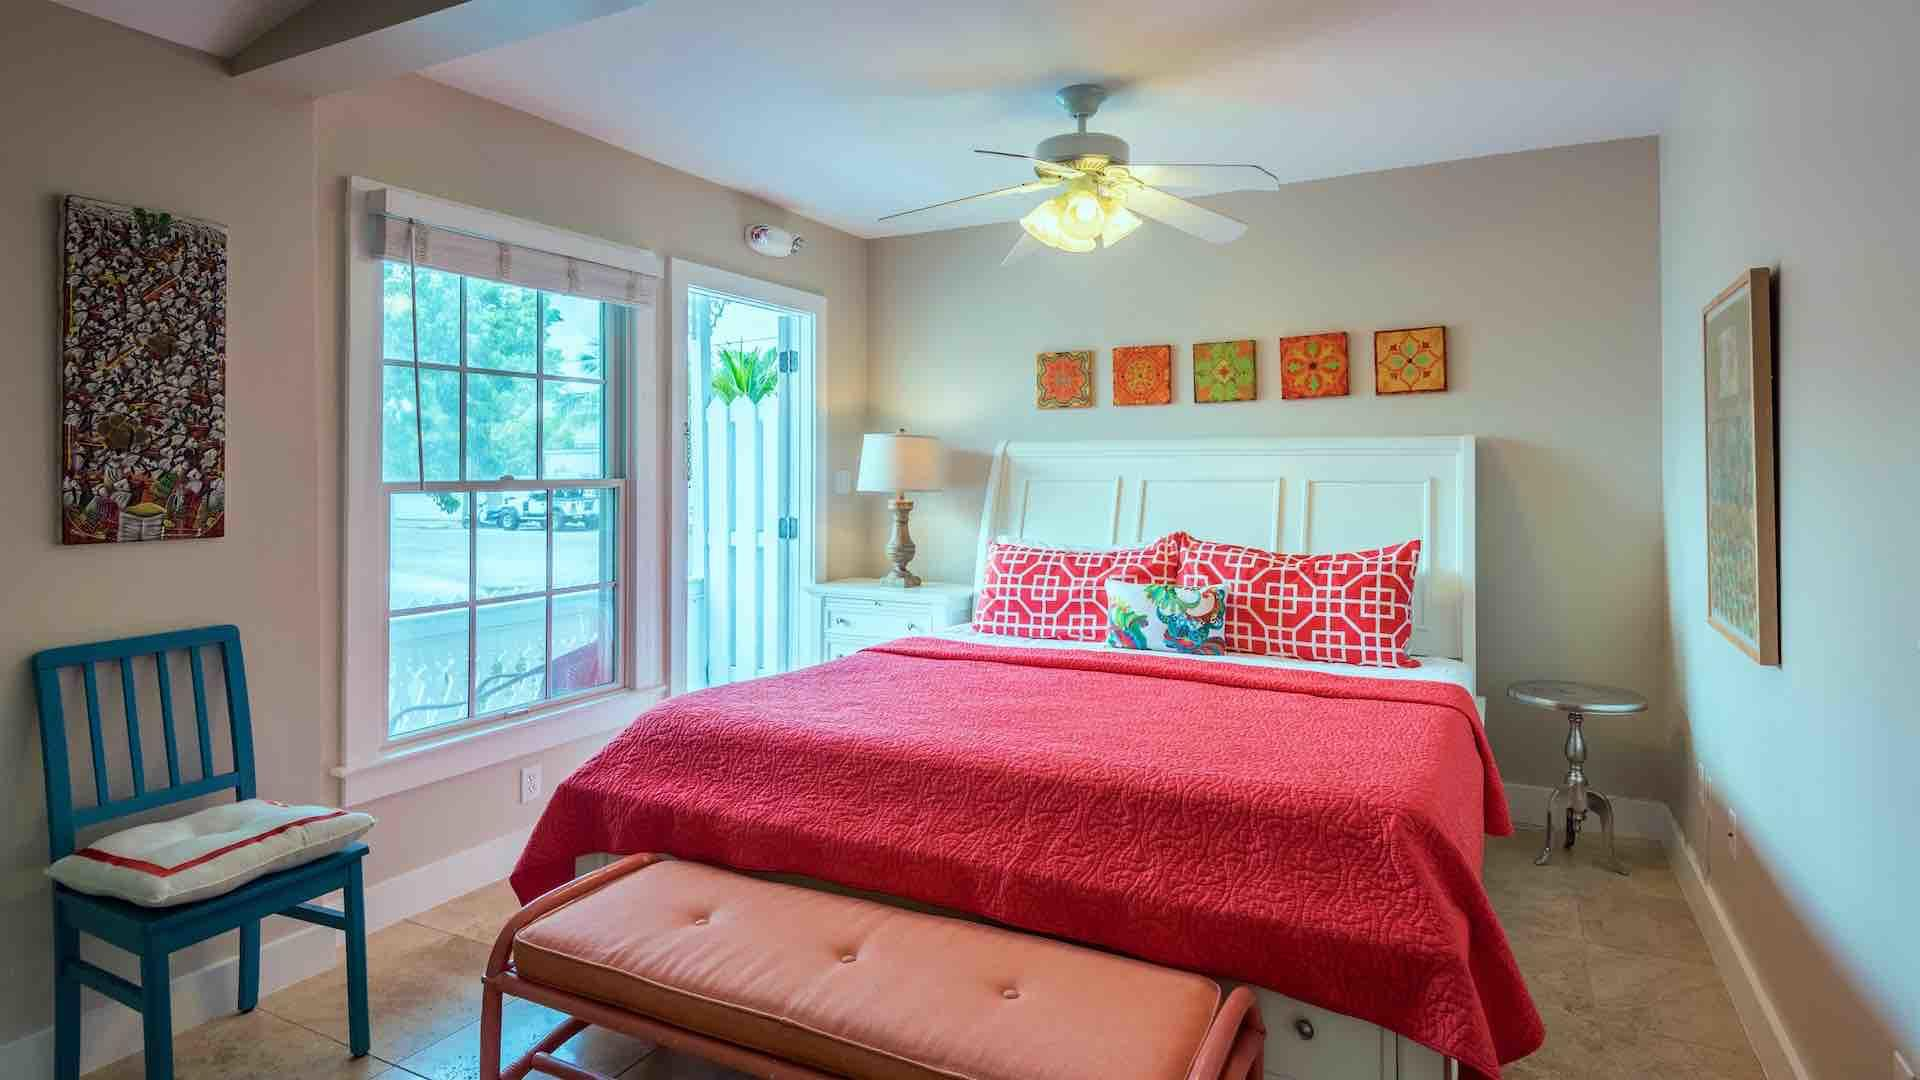 The first bedroom also has an overhead fan and island inspired decor...